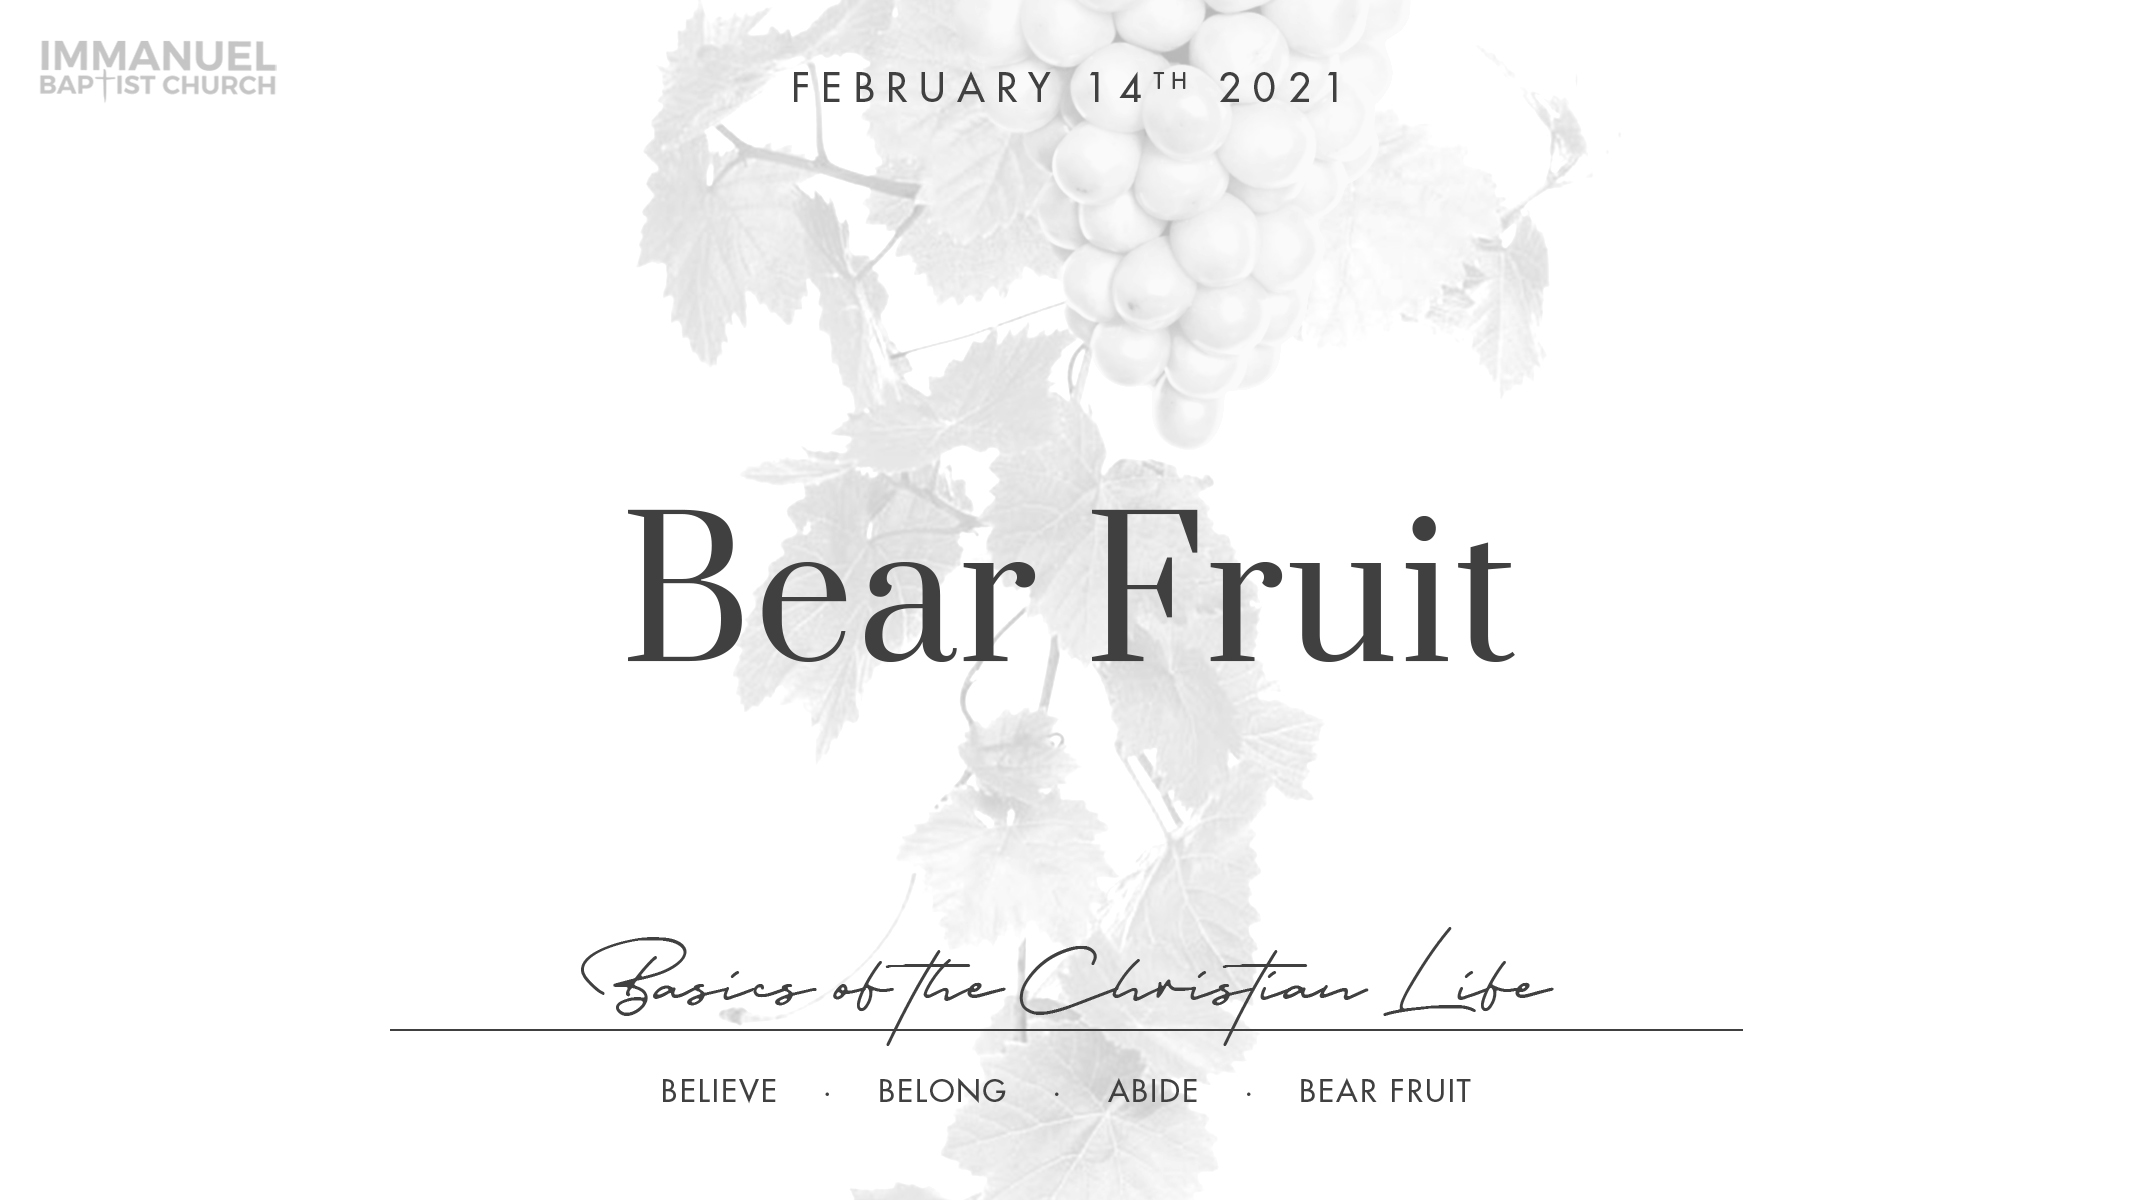 Bear Fruit Image